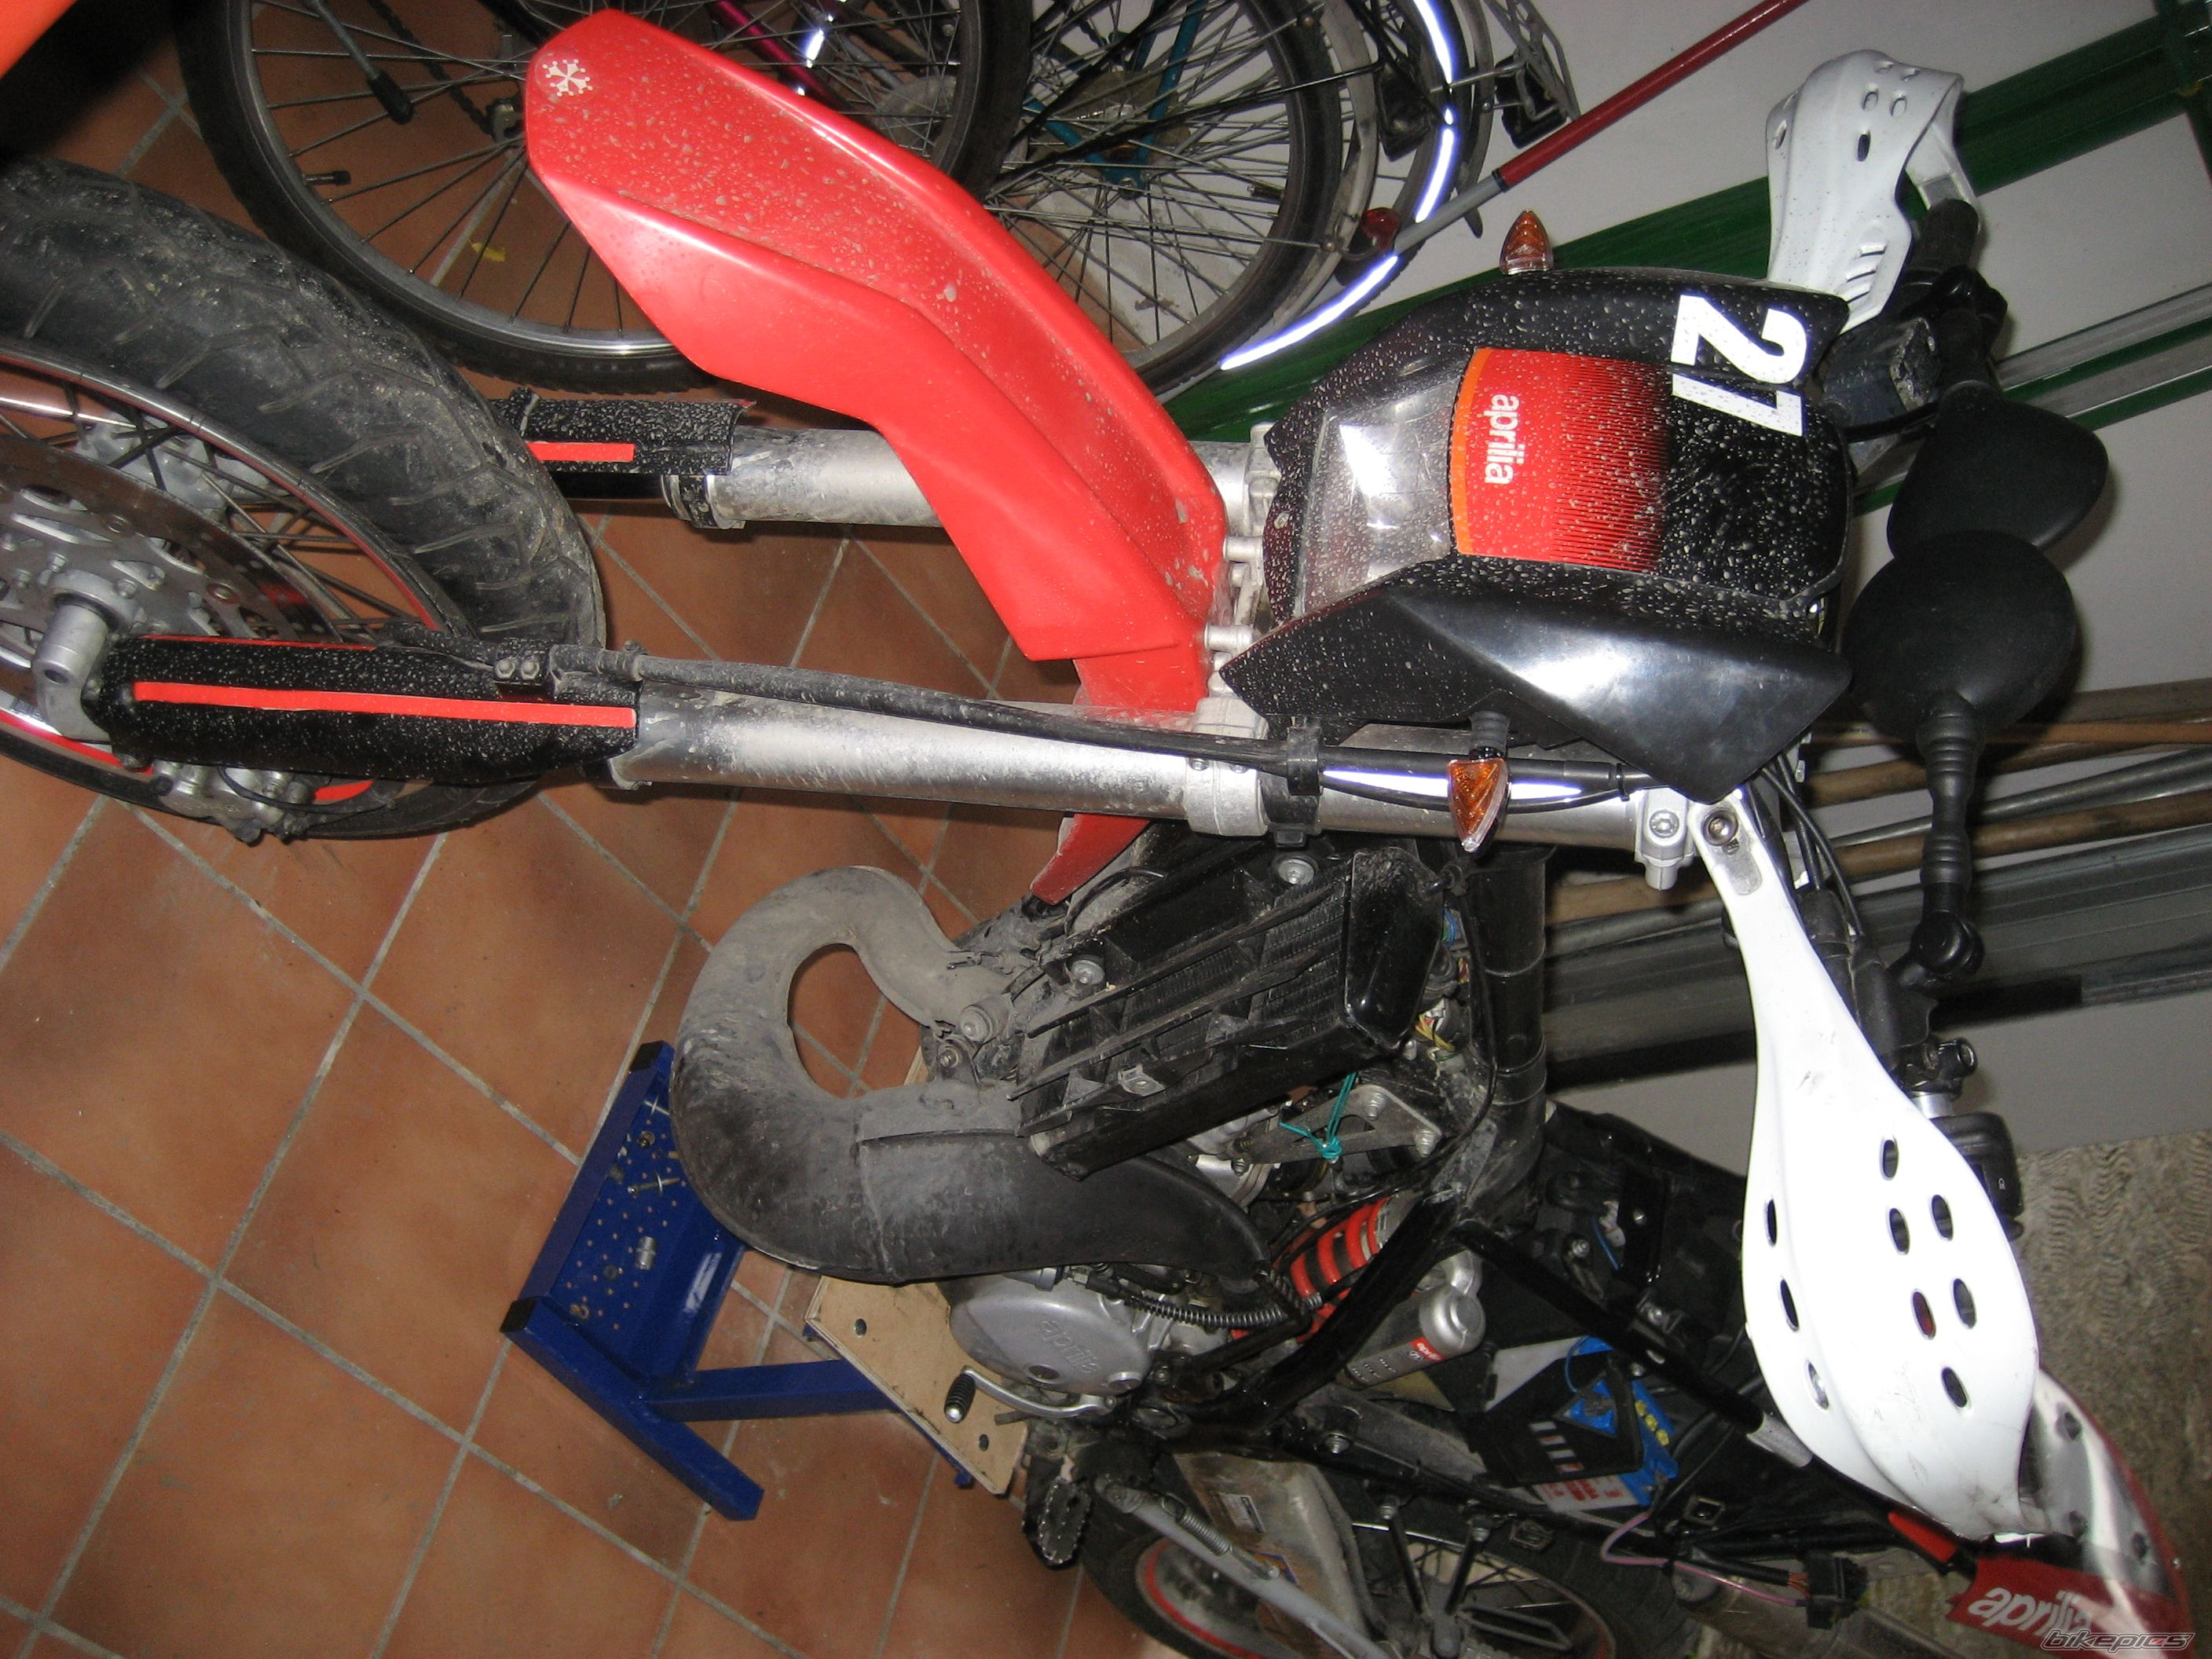 2004 APRILIA MX 125 | Picture 1866119 motorcycle photo